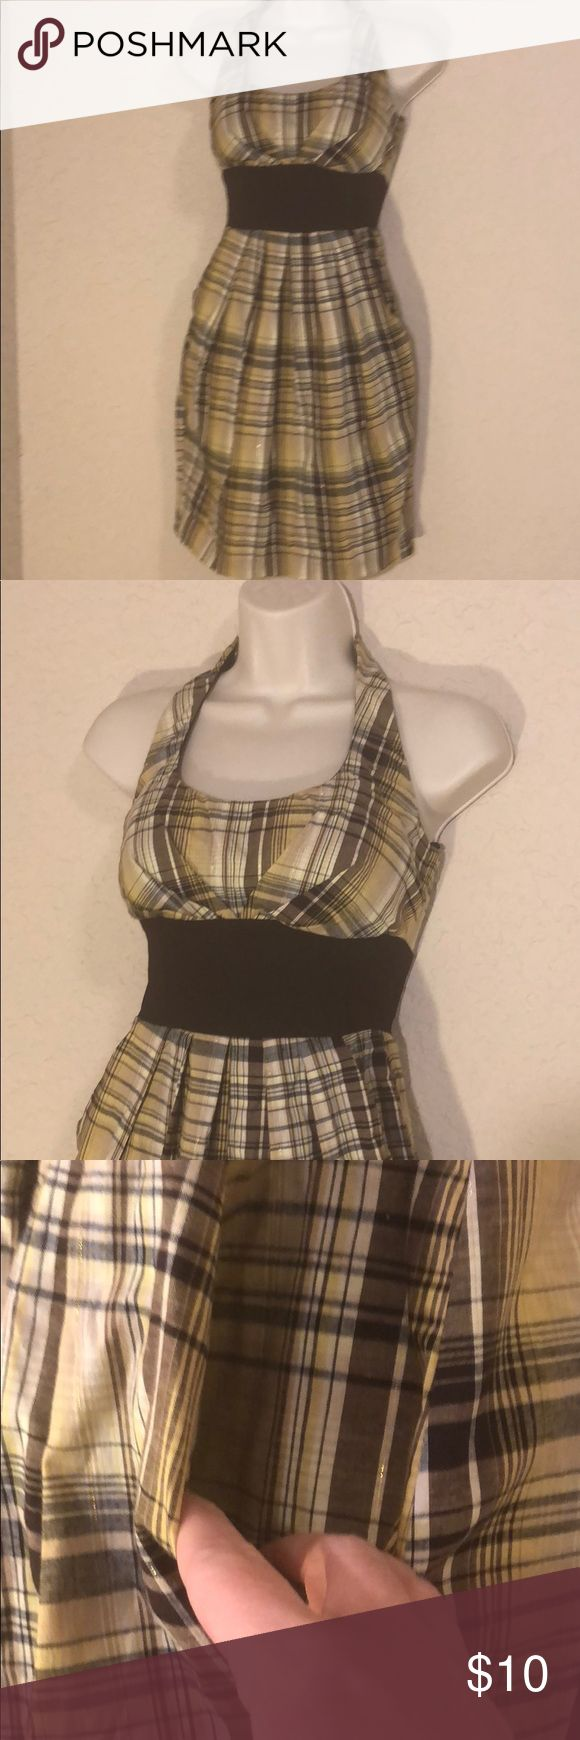 Plaid halter dress: with pockets! Yellow and brown plaid halter dress with gold accents . It has pockets and is really cute. B. smart Dresses Midi